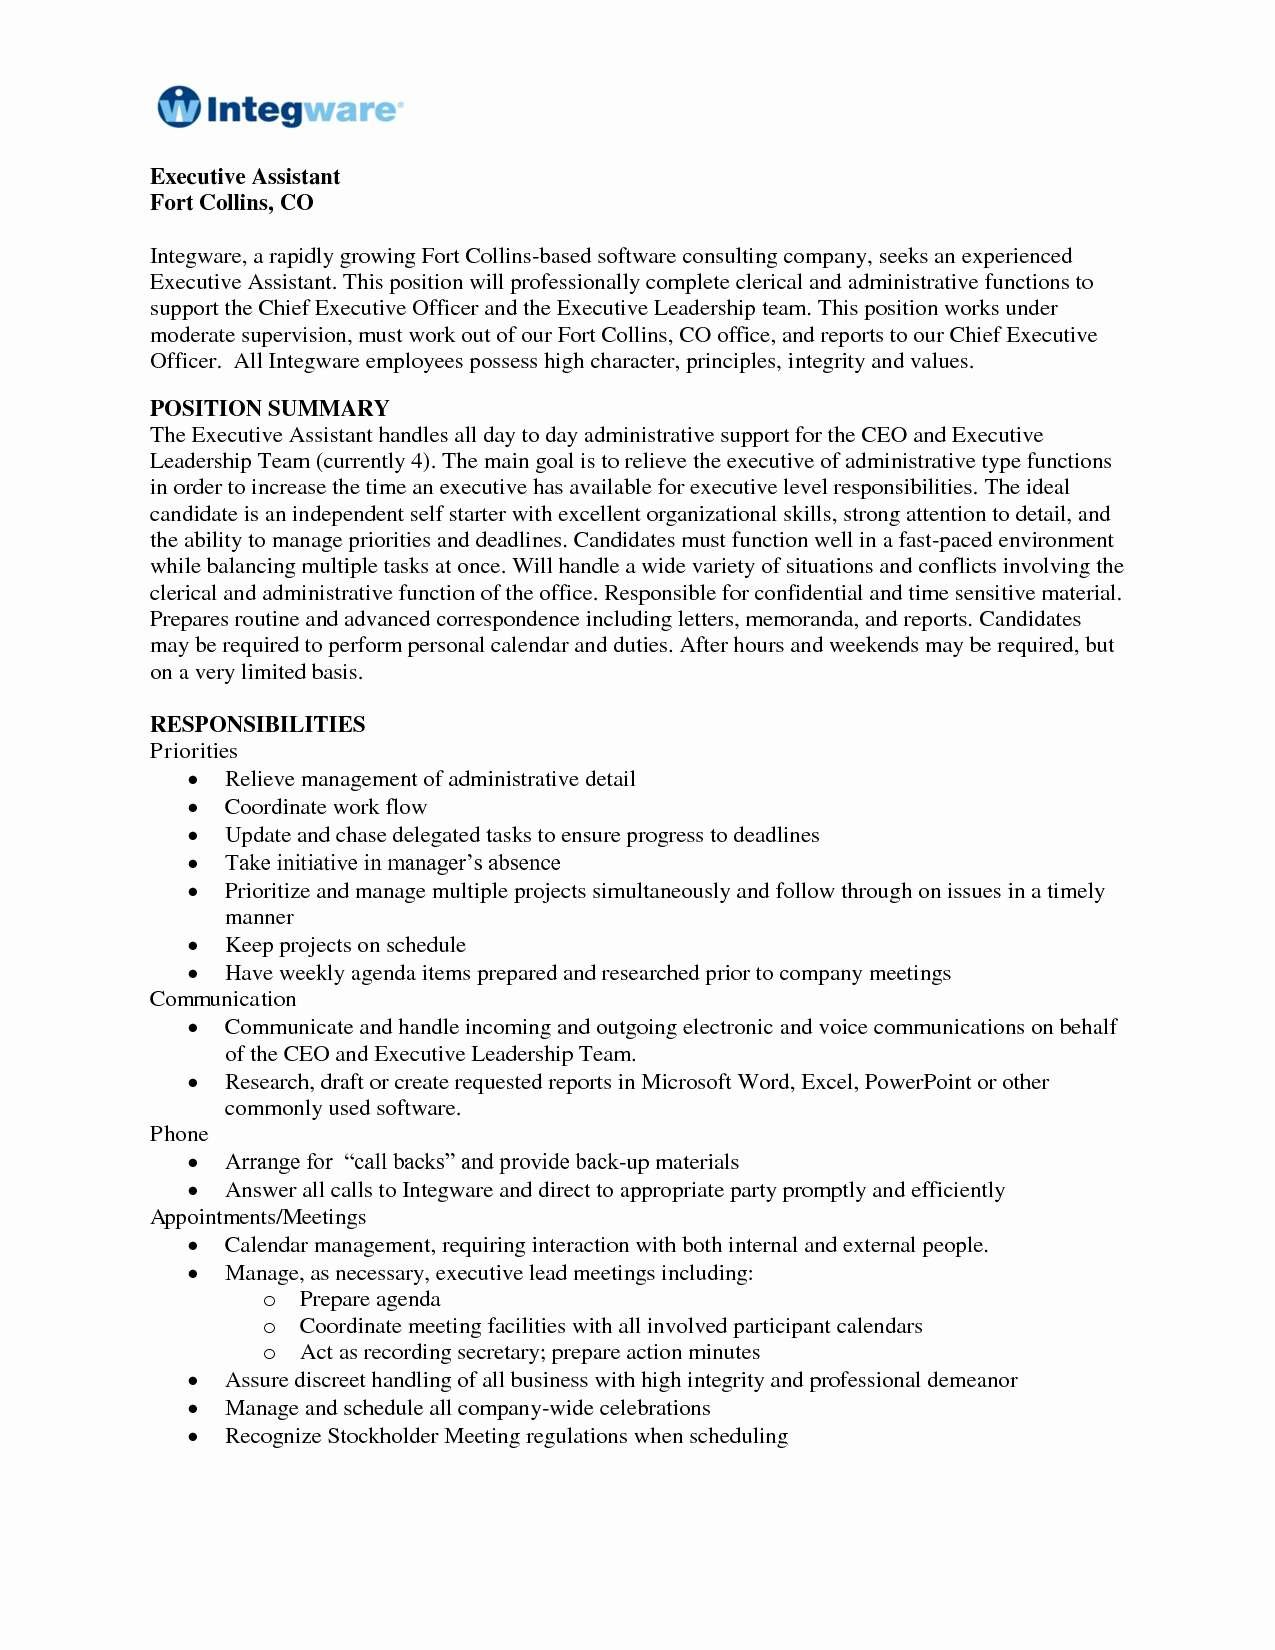 Synonym Collaborate - 23 Collaborate Synonym Resume